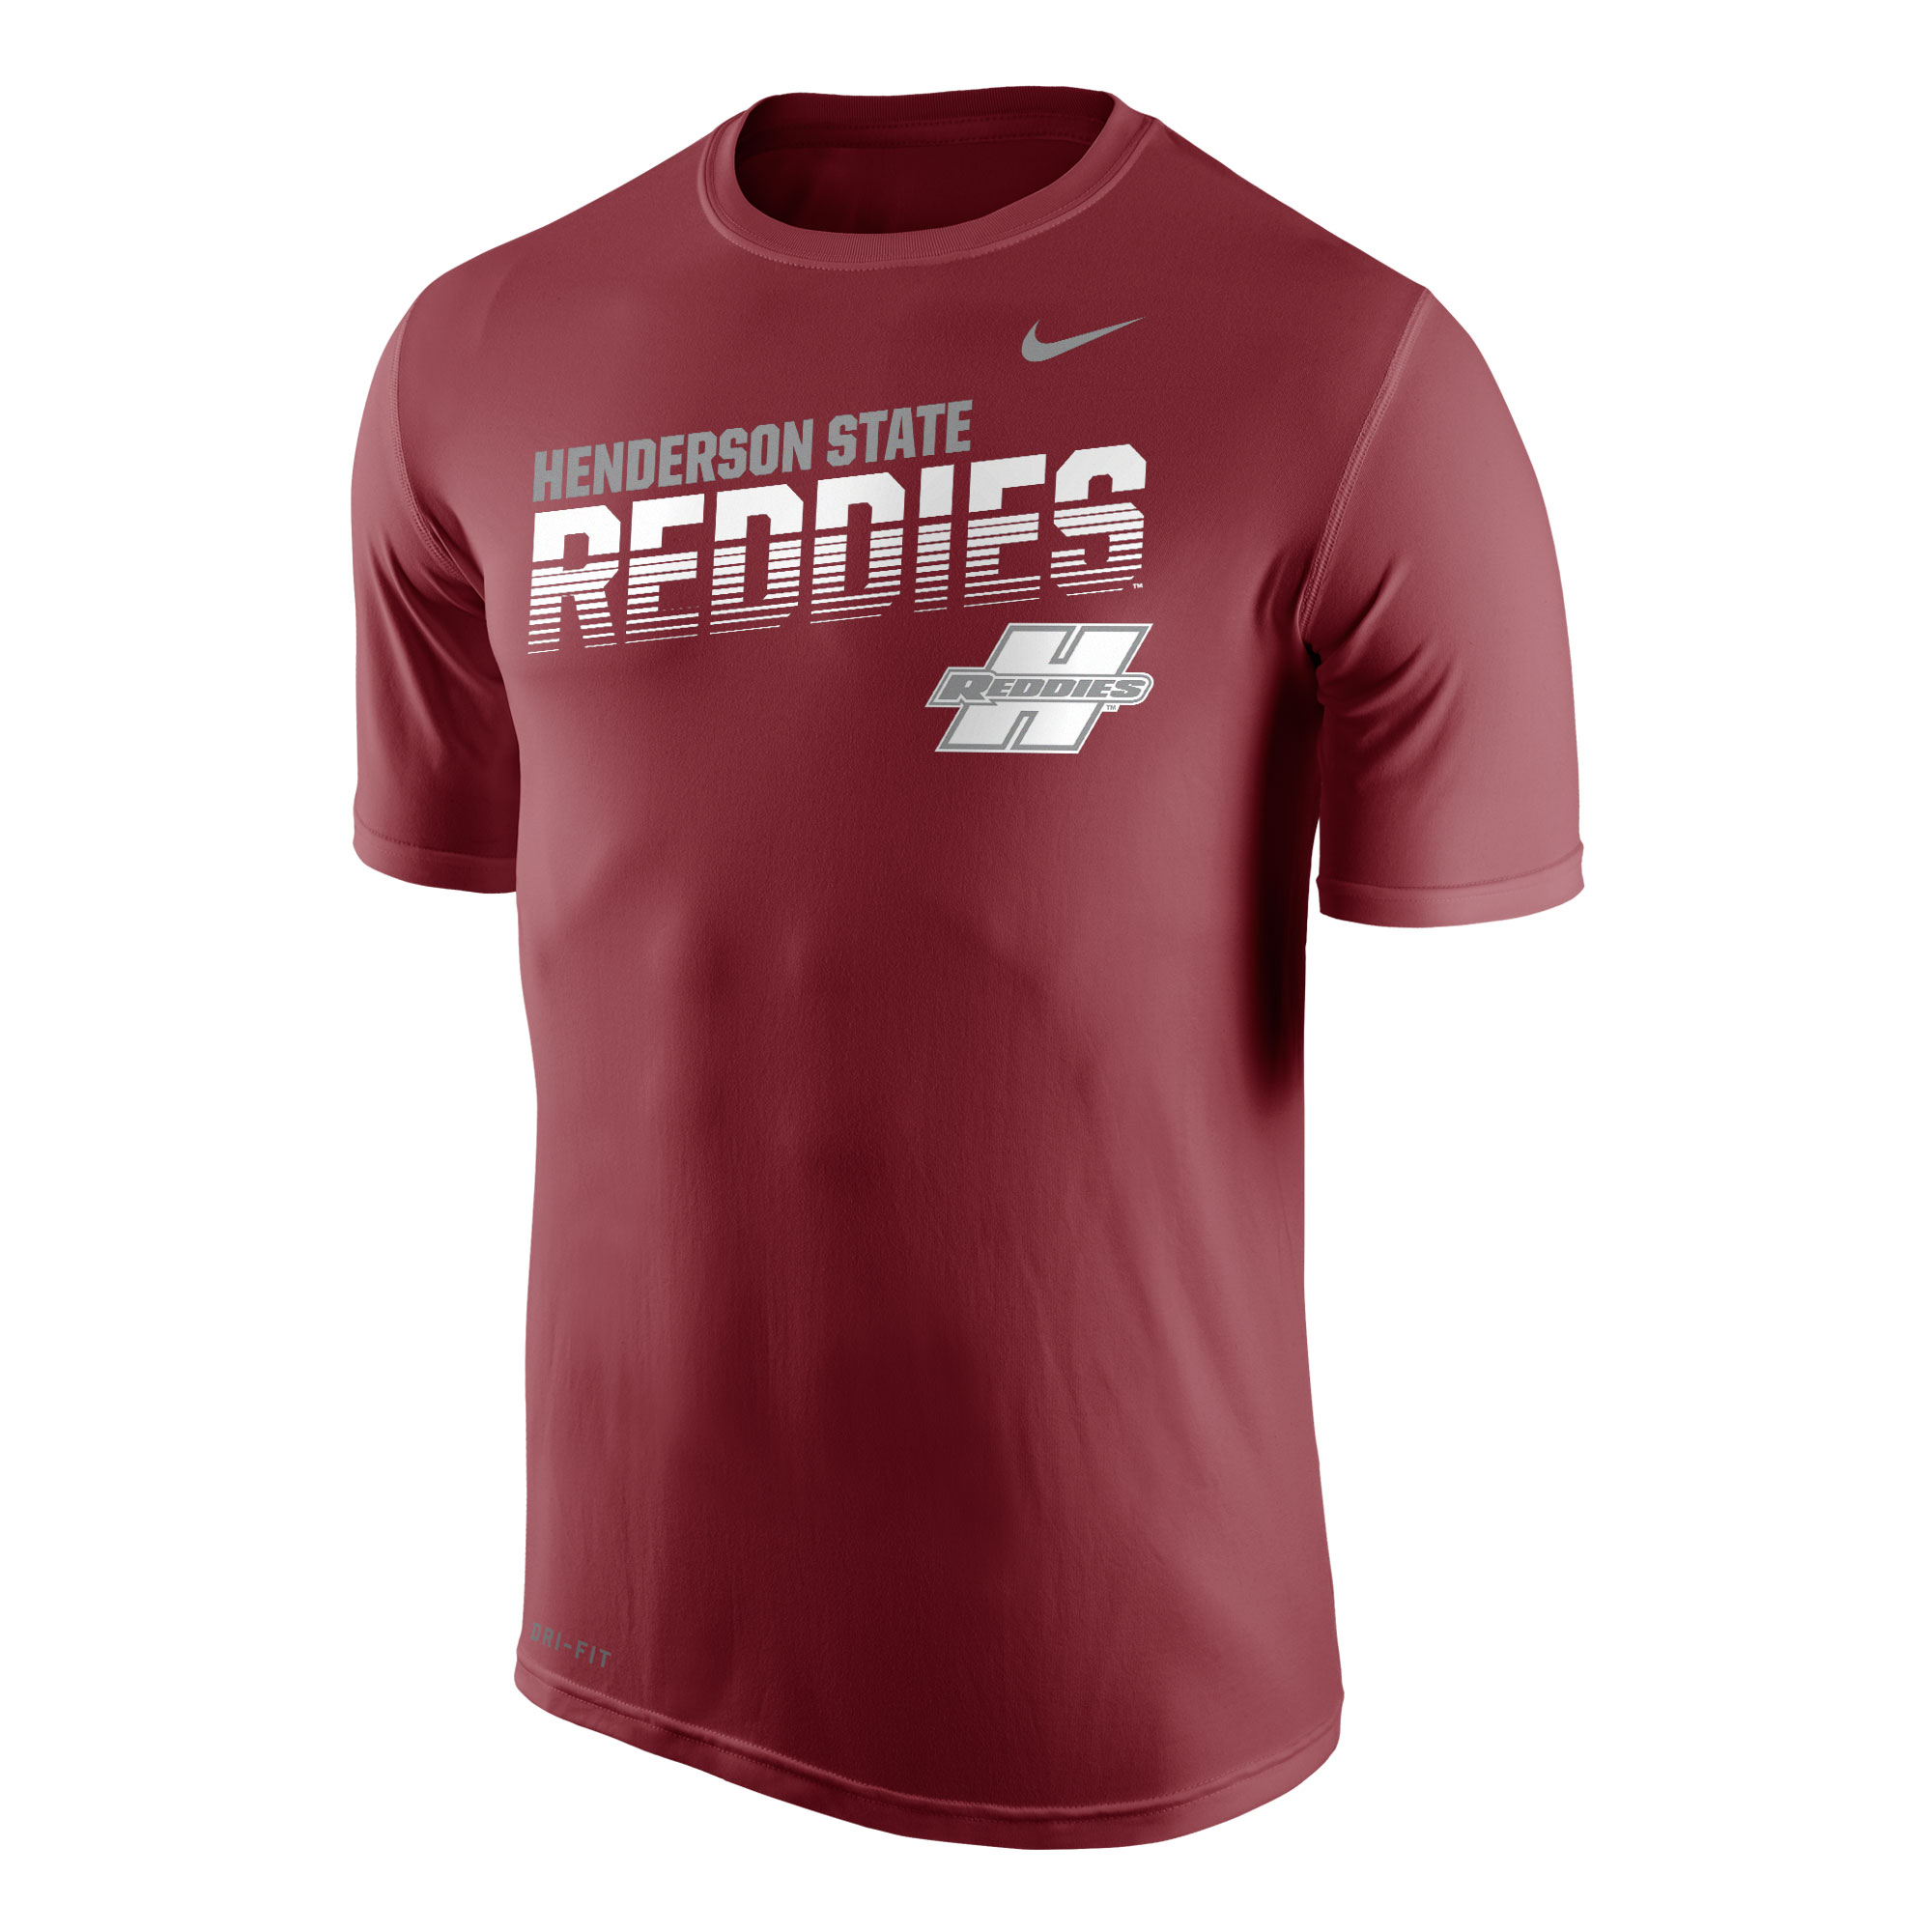 Henderson State Reddies Men's Legend Short Sleeve Tee